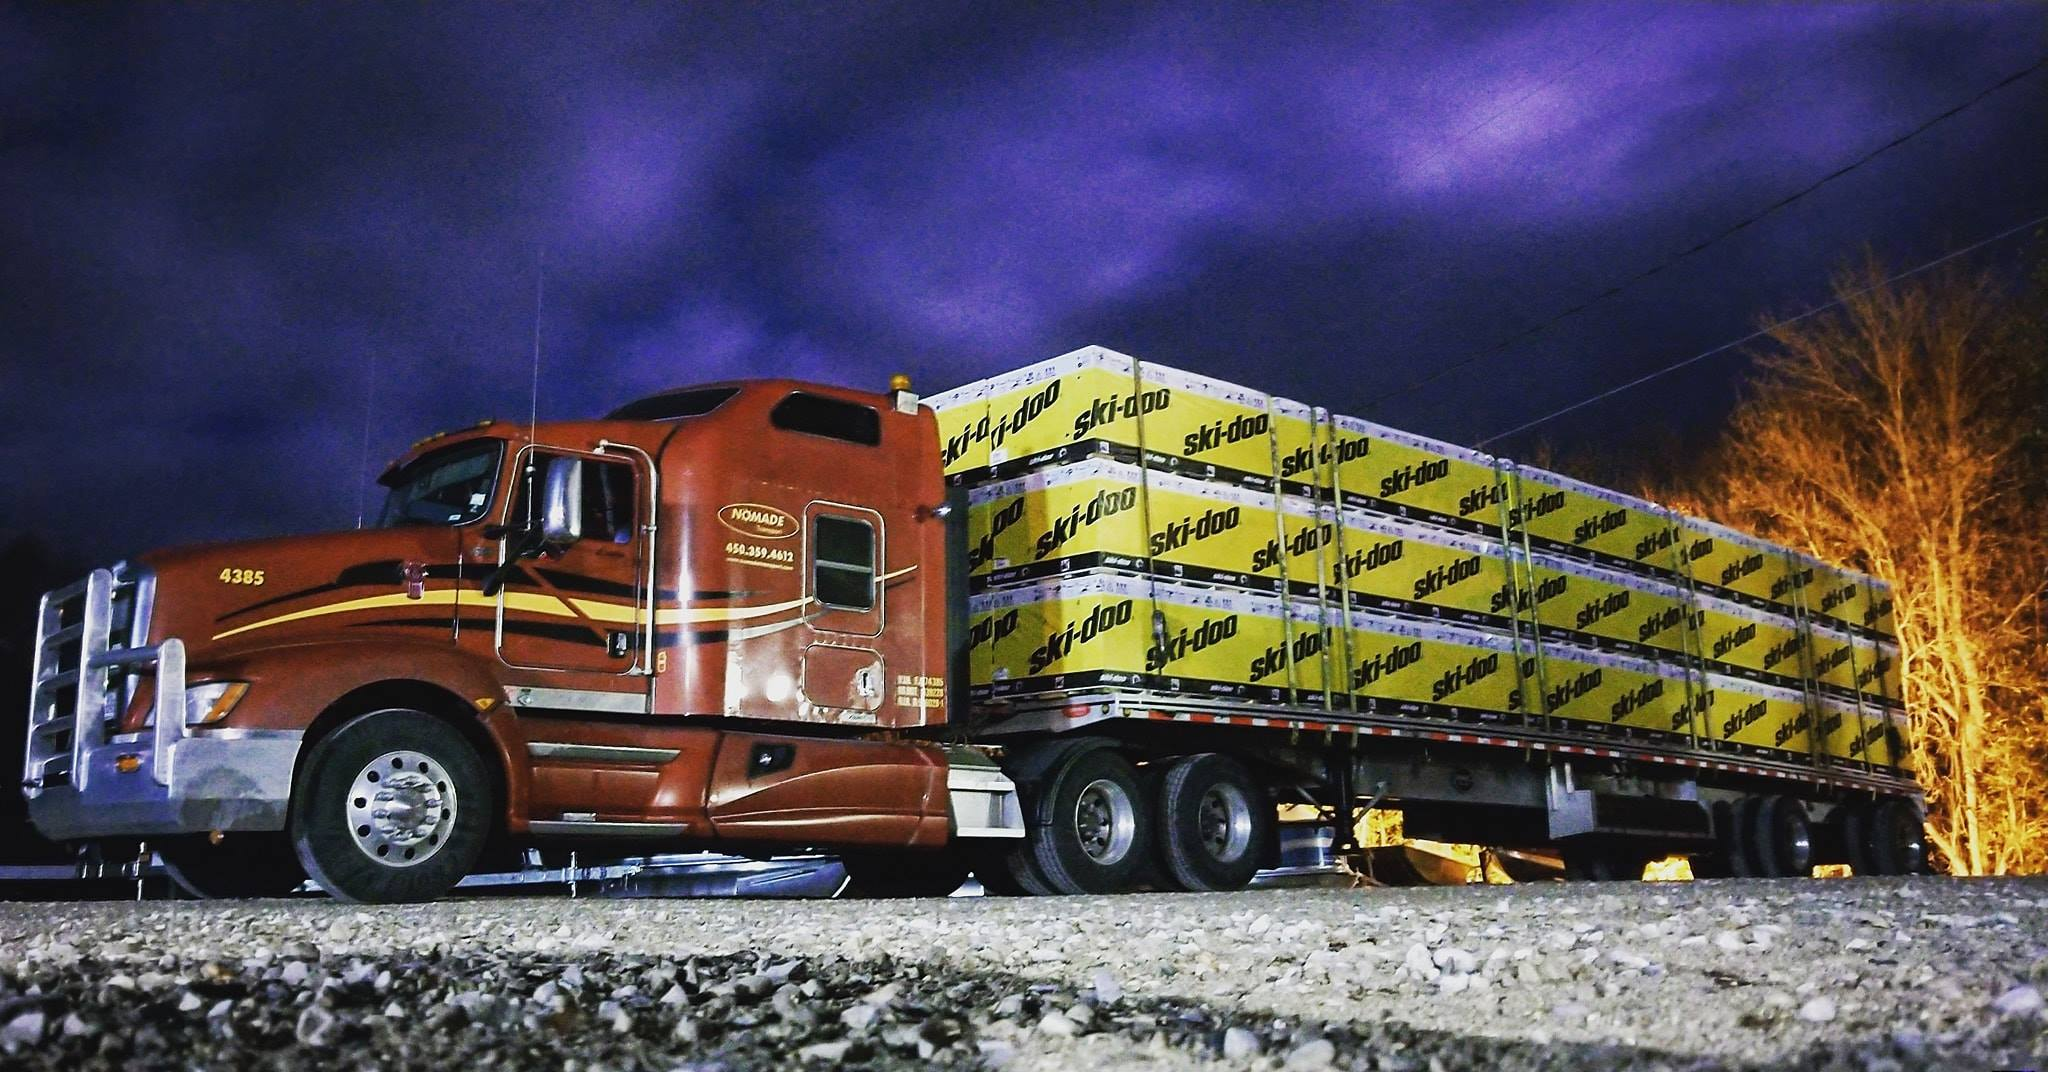 Satellite tracked trucks